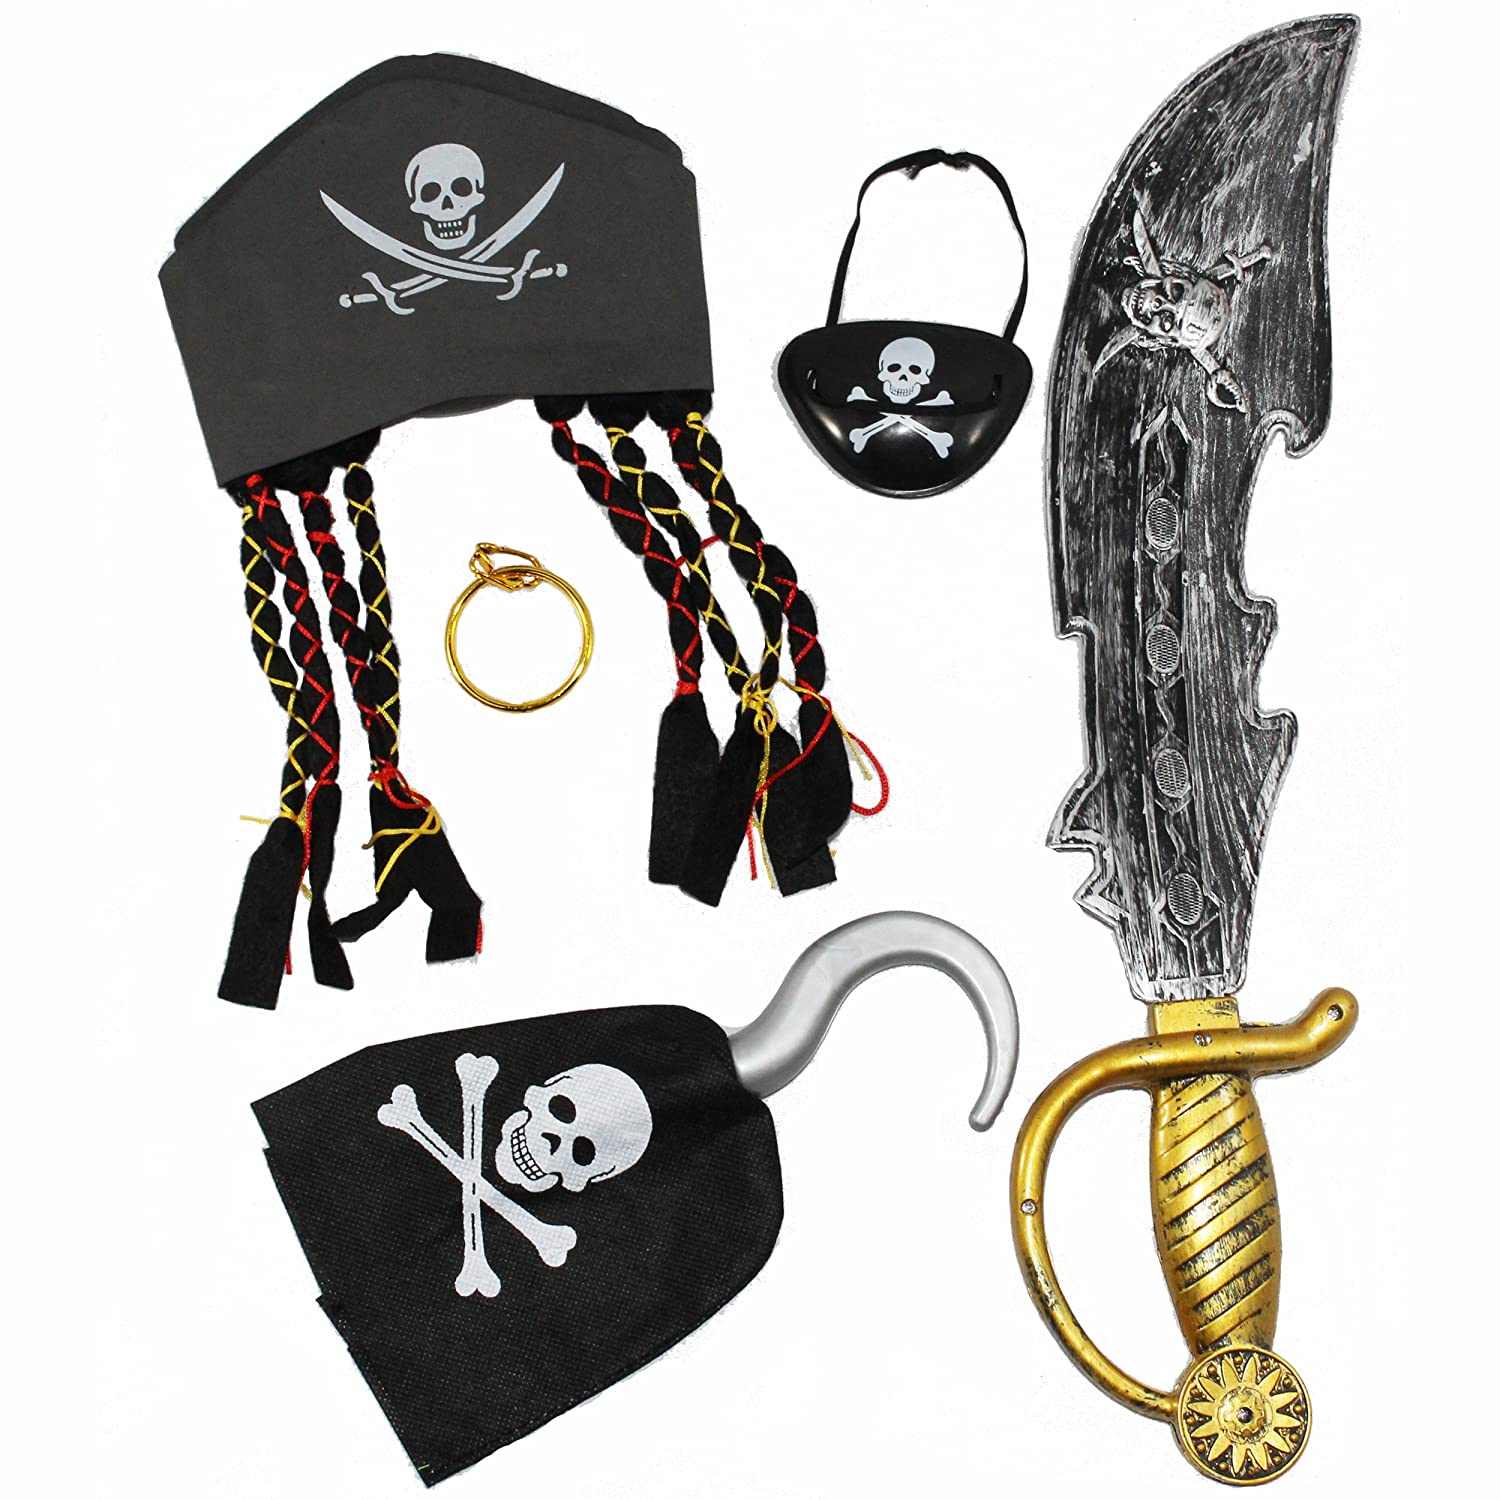 Joyin Toy Halloween Pirate Costume Set Including Hat, Eye Patche, Sword, Ear Ring and Hook